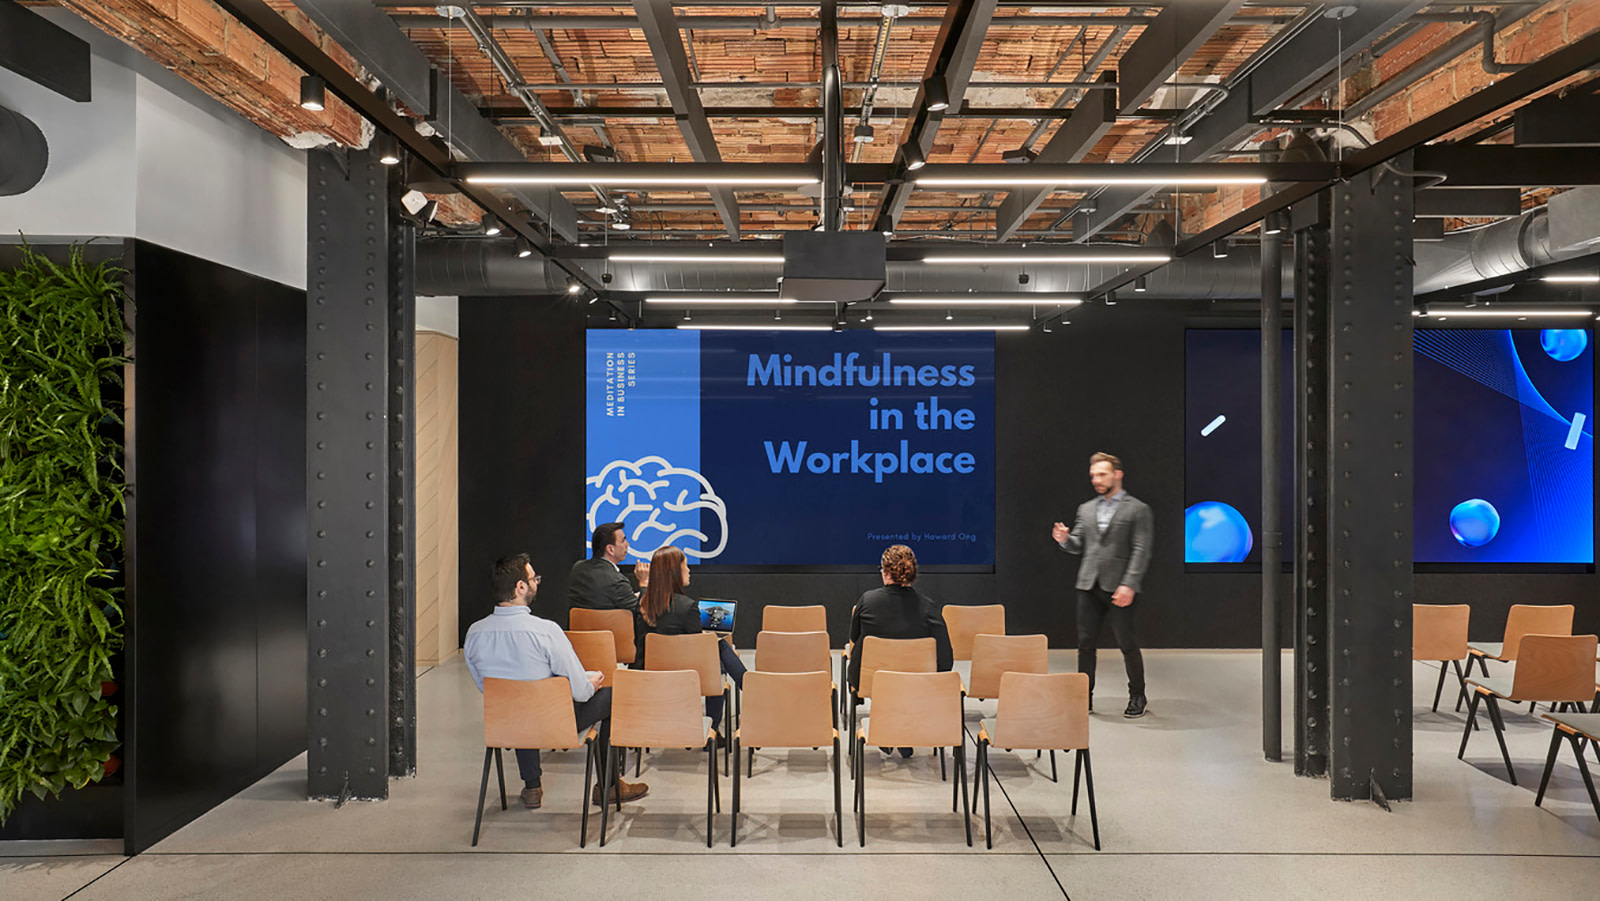 A large group presentation and meeting space in New York City